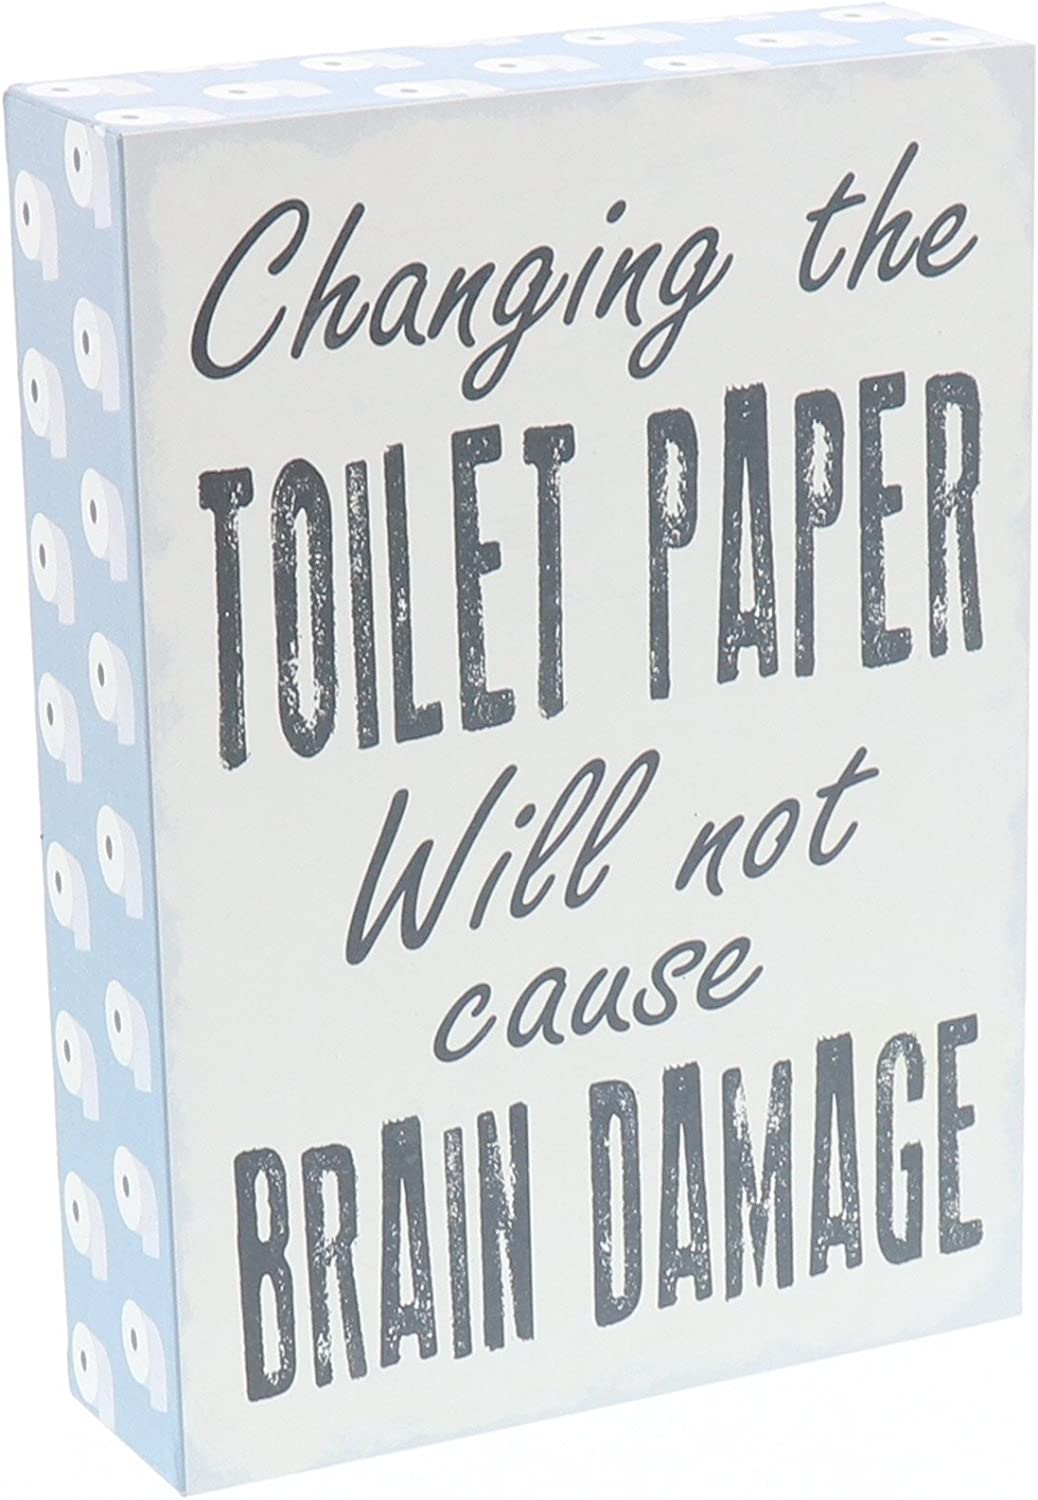 """Barnyard Designs Changing The Toilet Paper Will Not Cause Brain Damage Box Wall Art Sign, Primitive Country Farmhouse Bathroom Home Decor Sign with Sayings 7"""" x 5"""""""